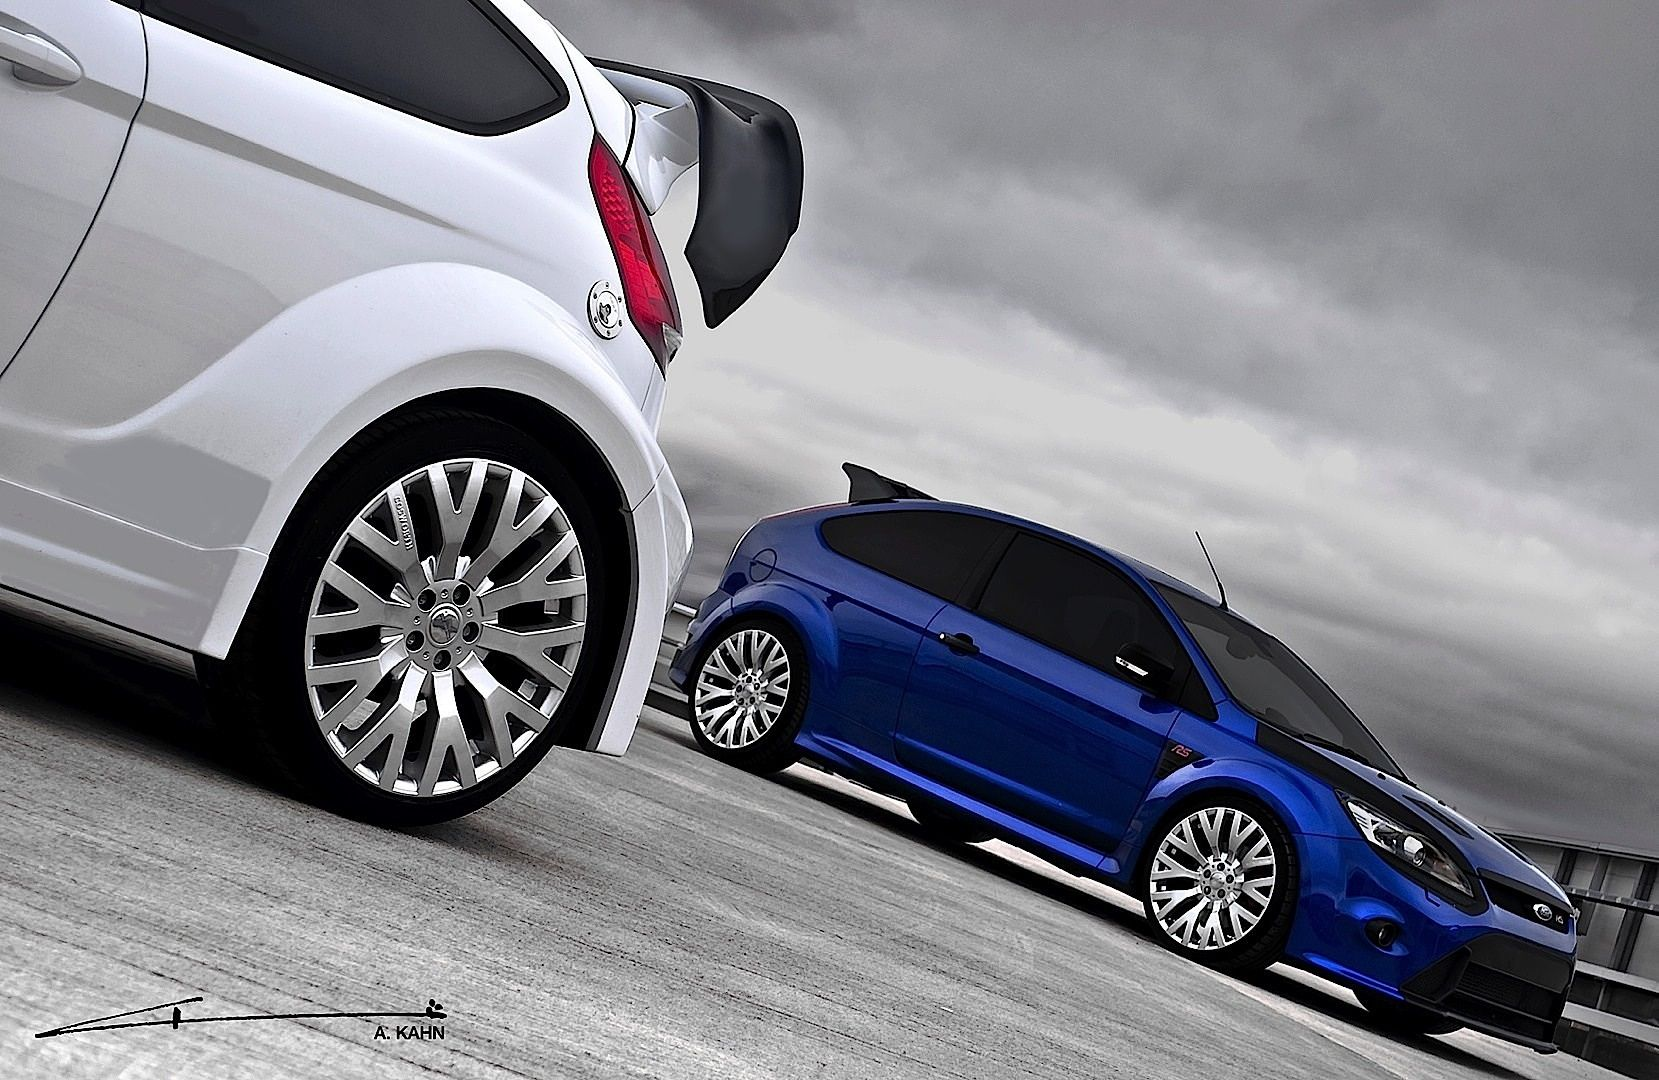 Kahn Ford Focus Rs And Fiesta St With Cosworth Wheels Released Ford Focus Rs Ford Focus Focus Rs